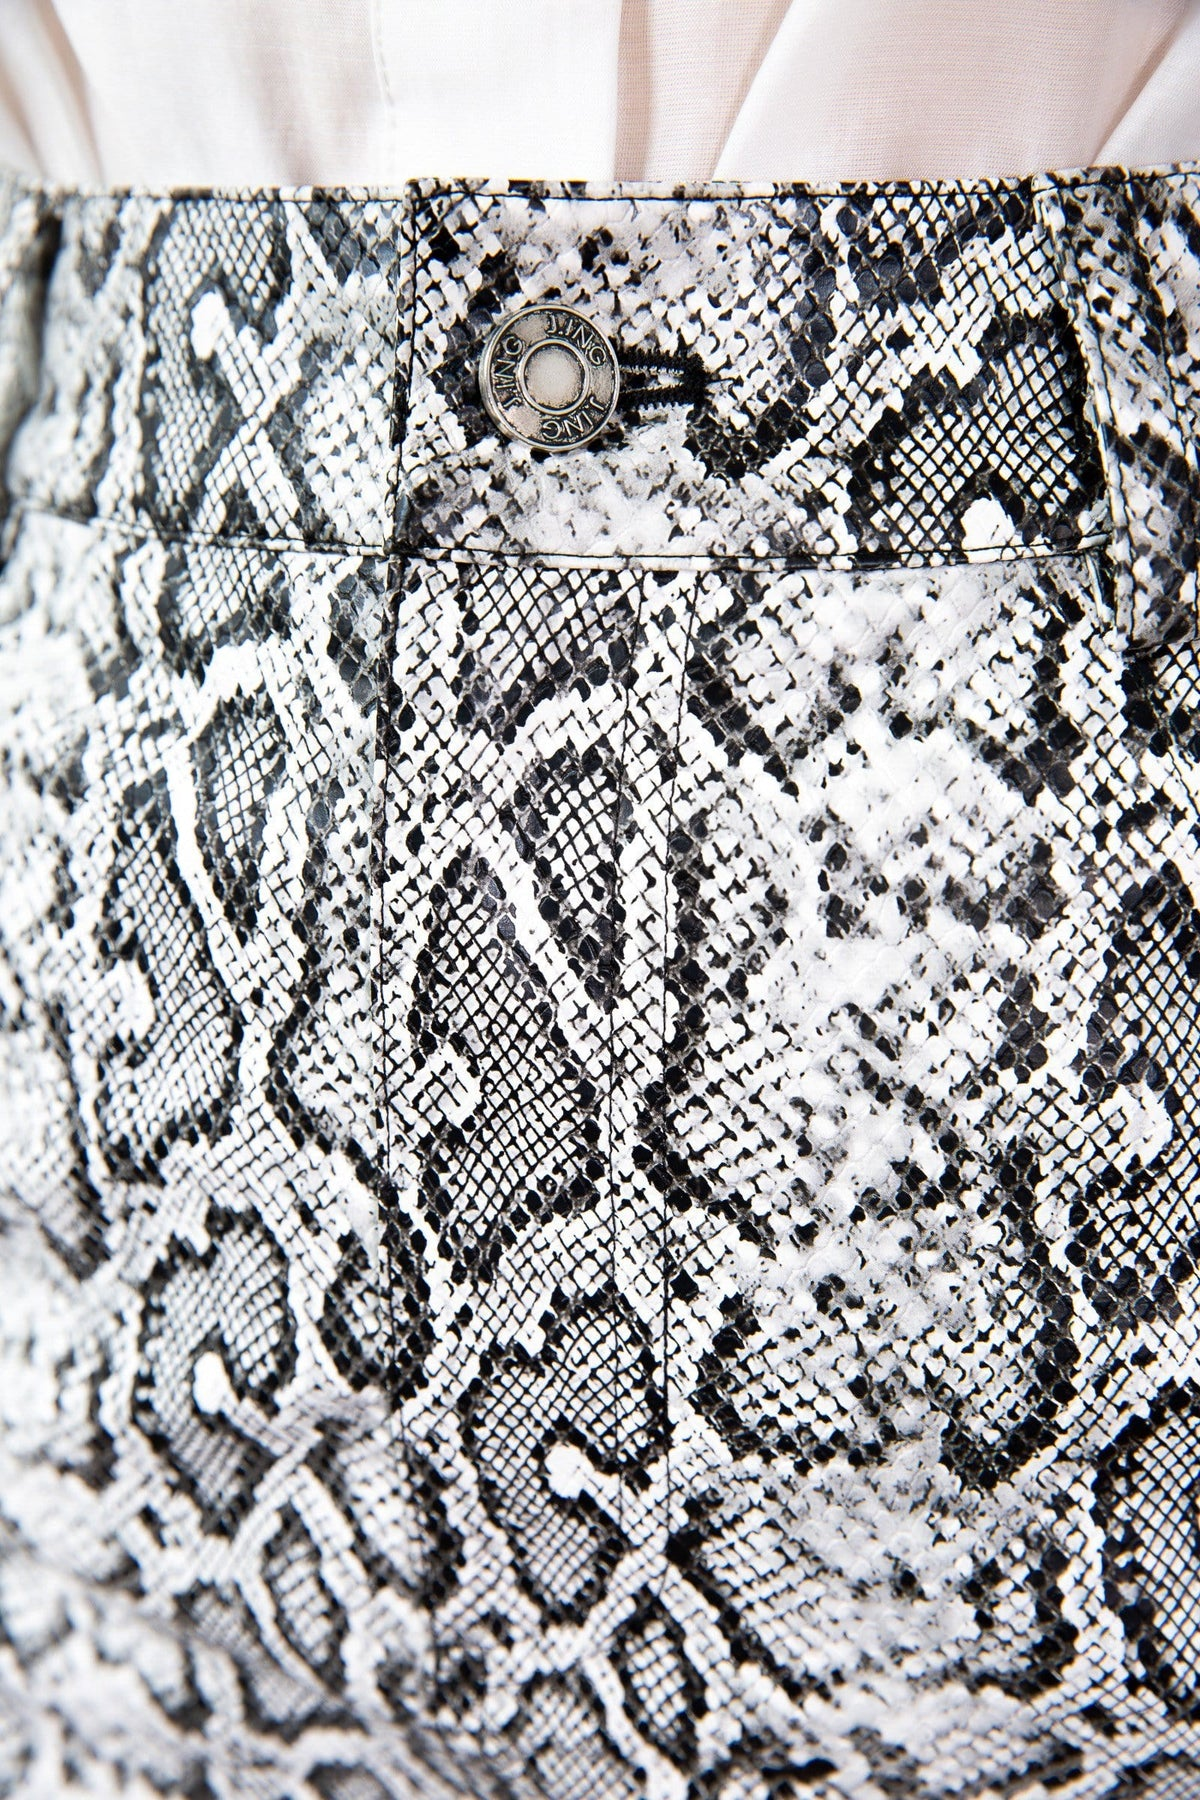 snakeskin print close-up grey white and black for women j.ing